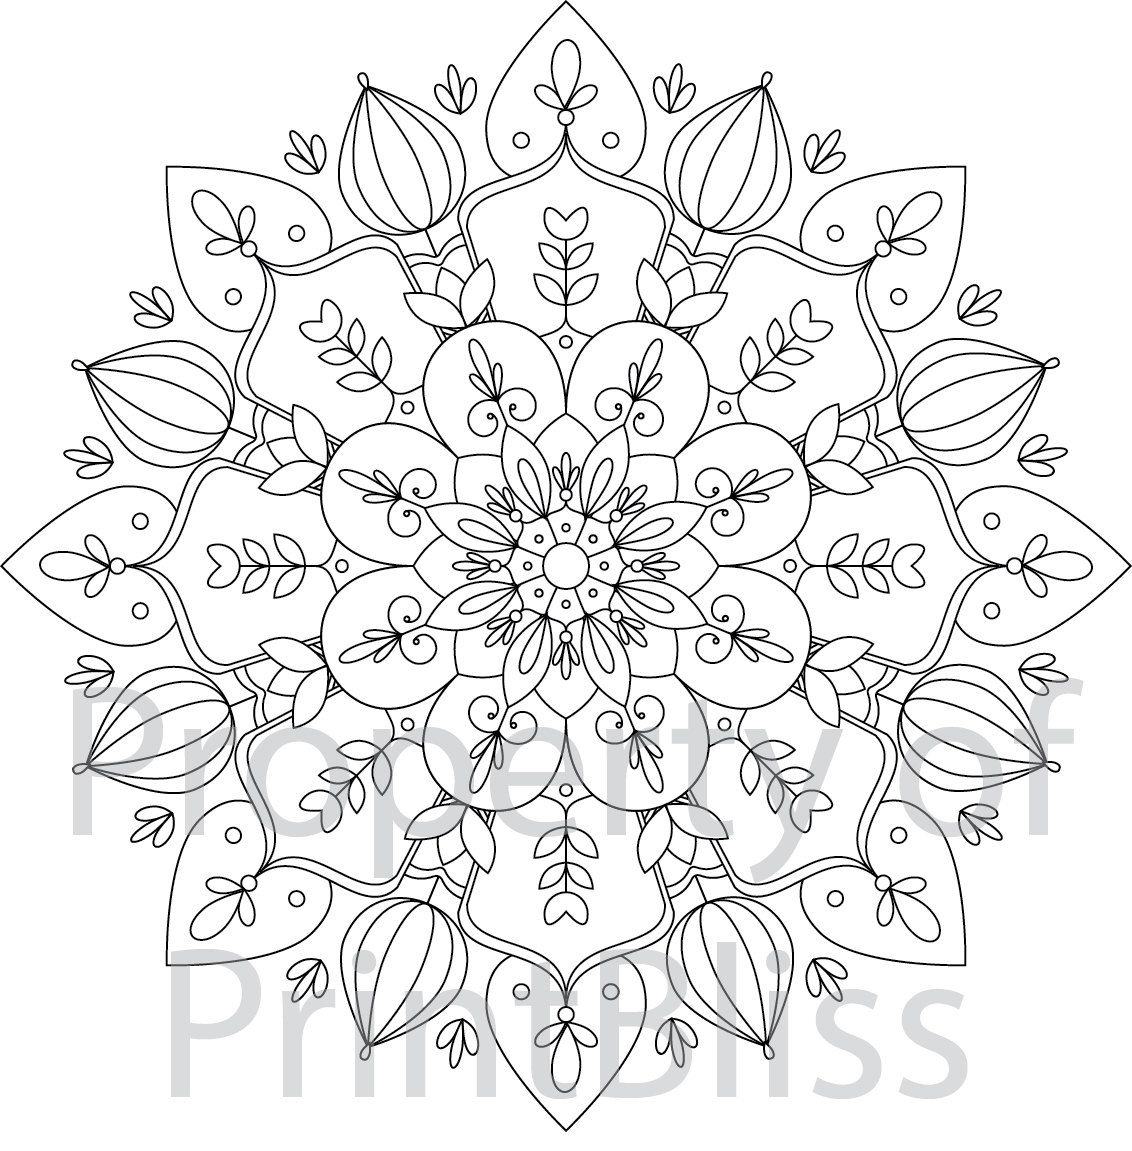 6 Flower Mandala printable coloring